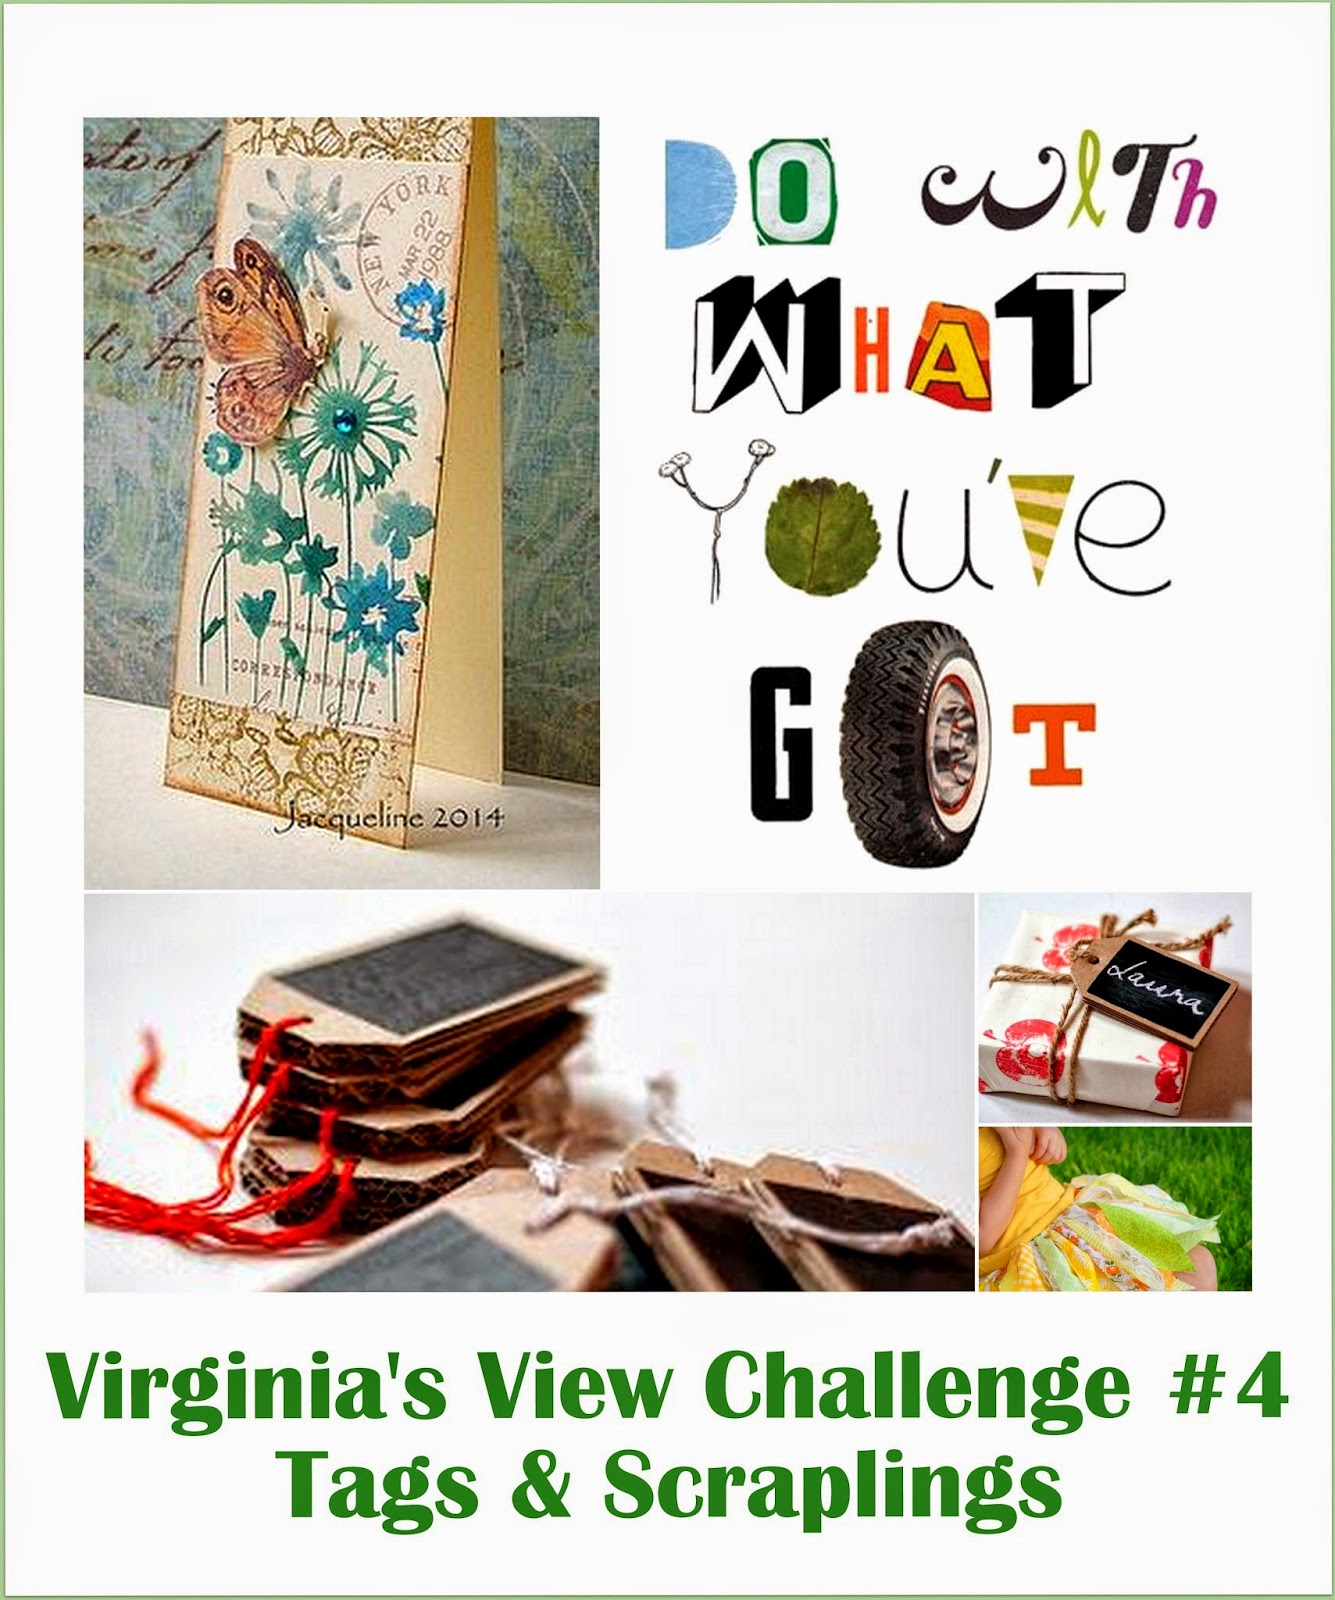 http://virginiasviewchallenge.blogspot.co.uk/2014/06/virginias-view-challenge-4.html